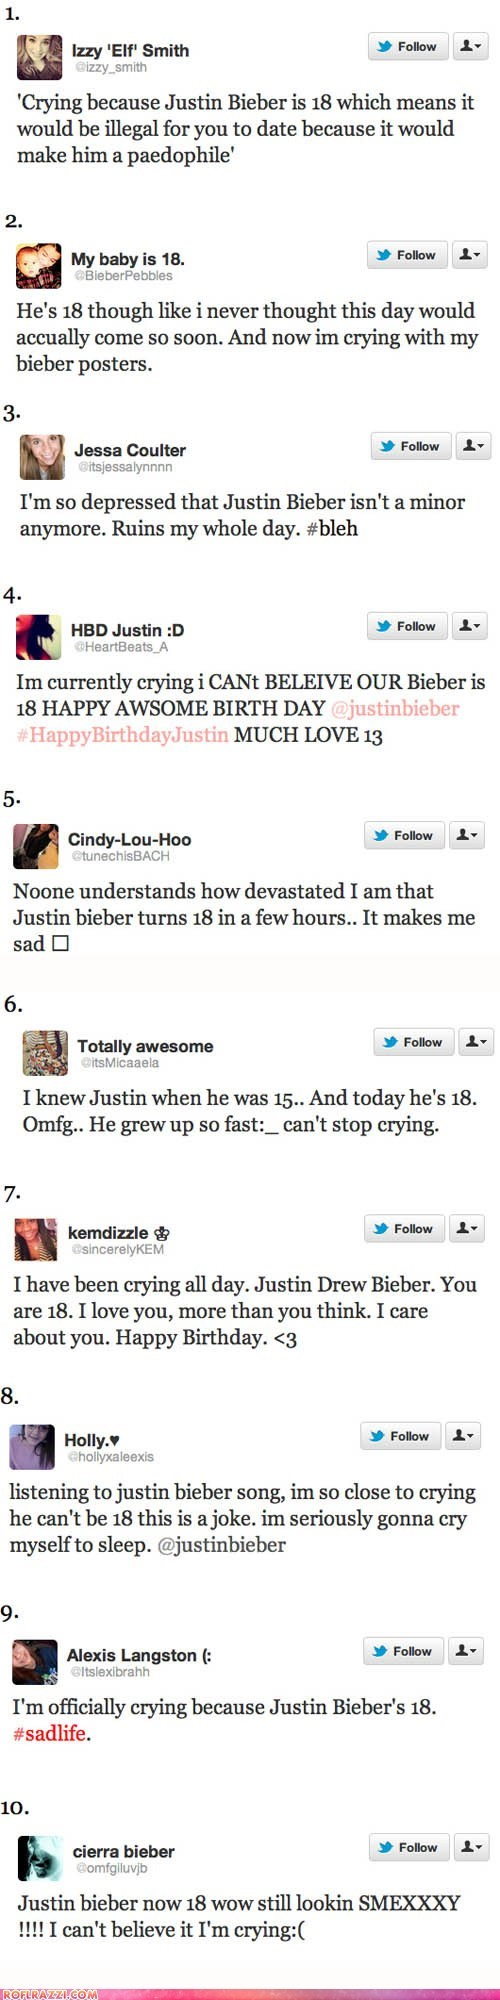 The 10 Worst Tweets About Justin Bieber's 18th Birthday